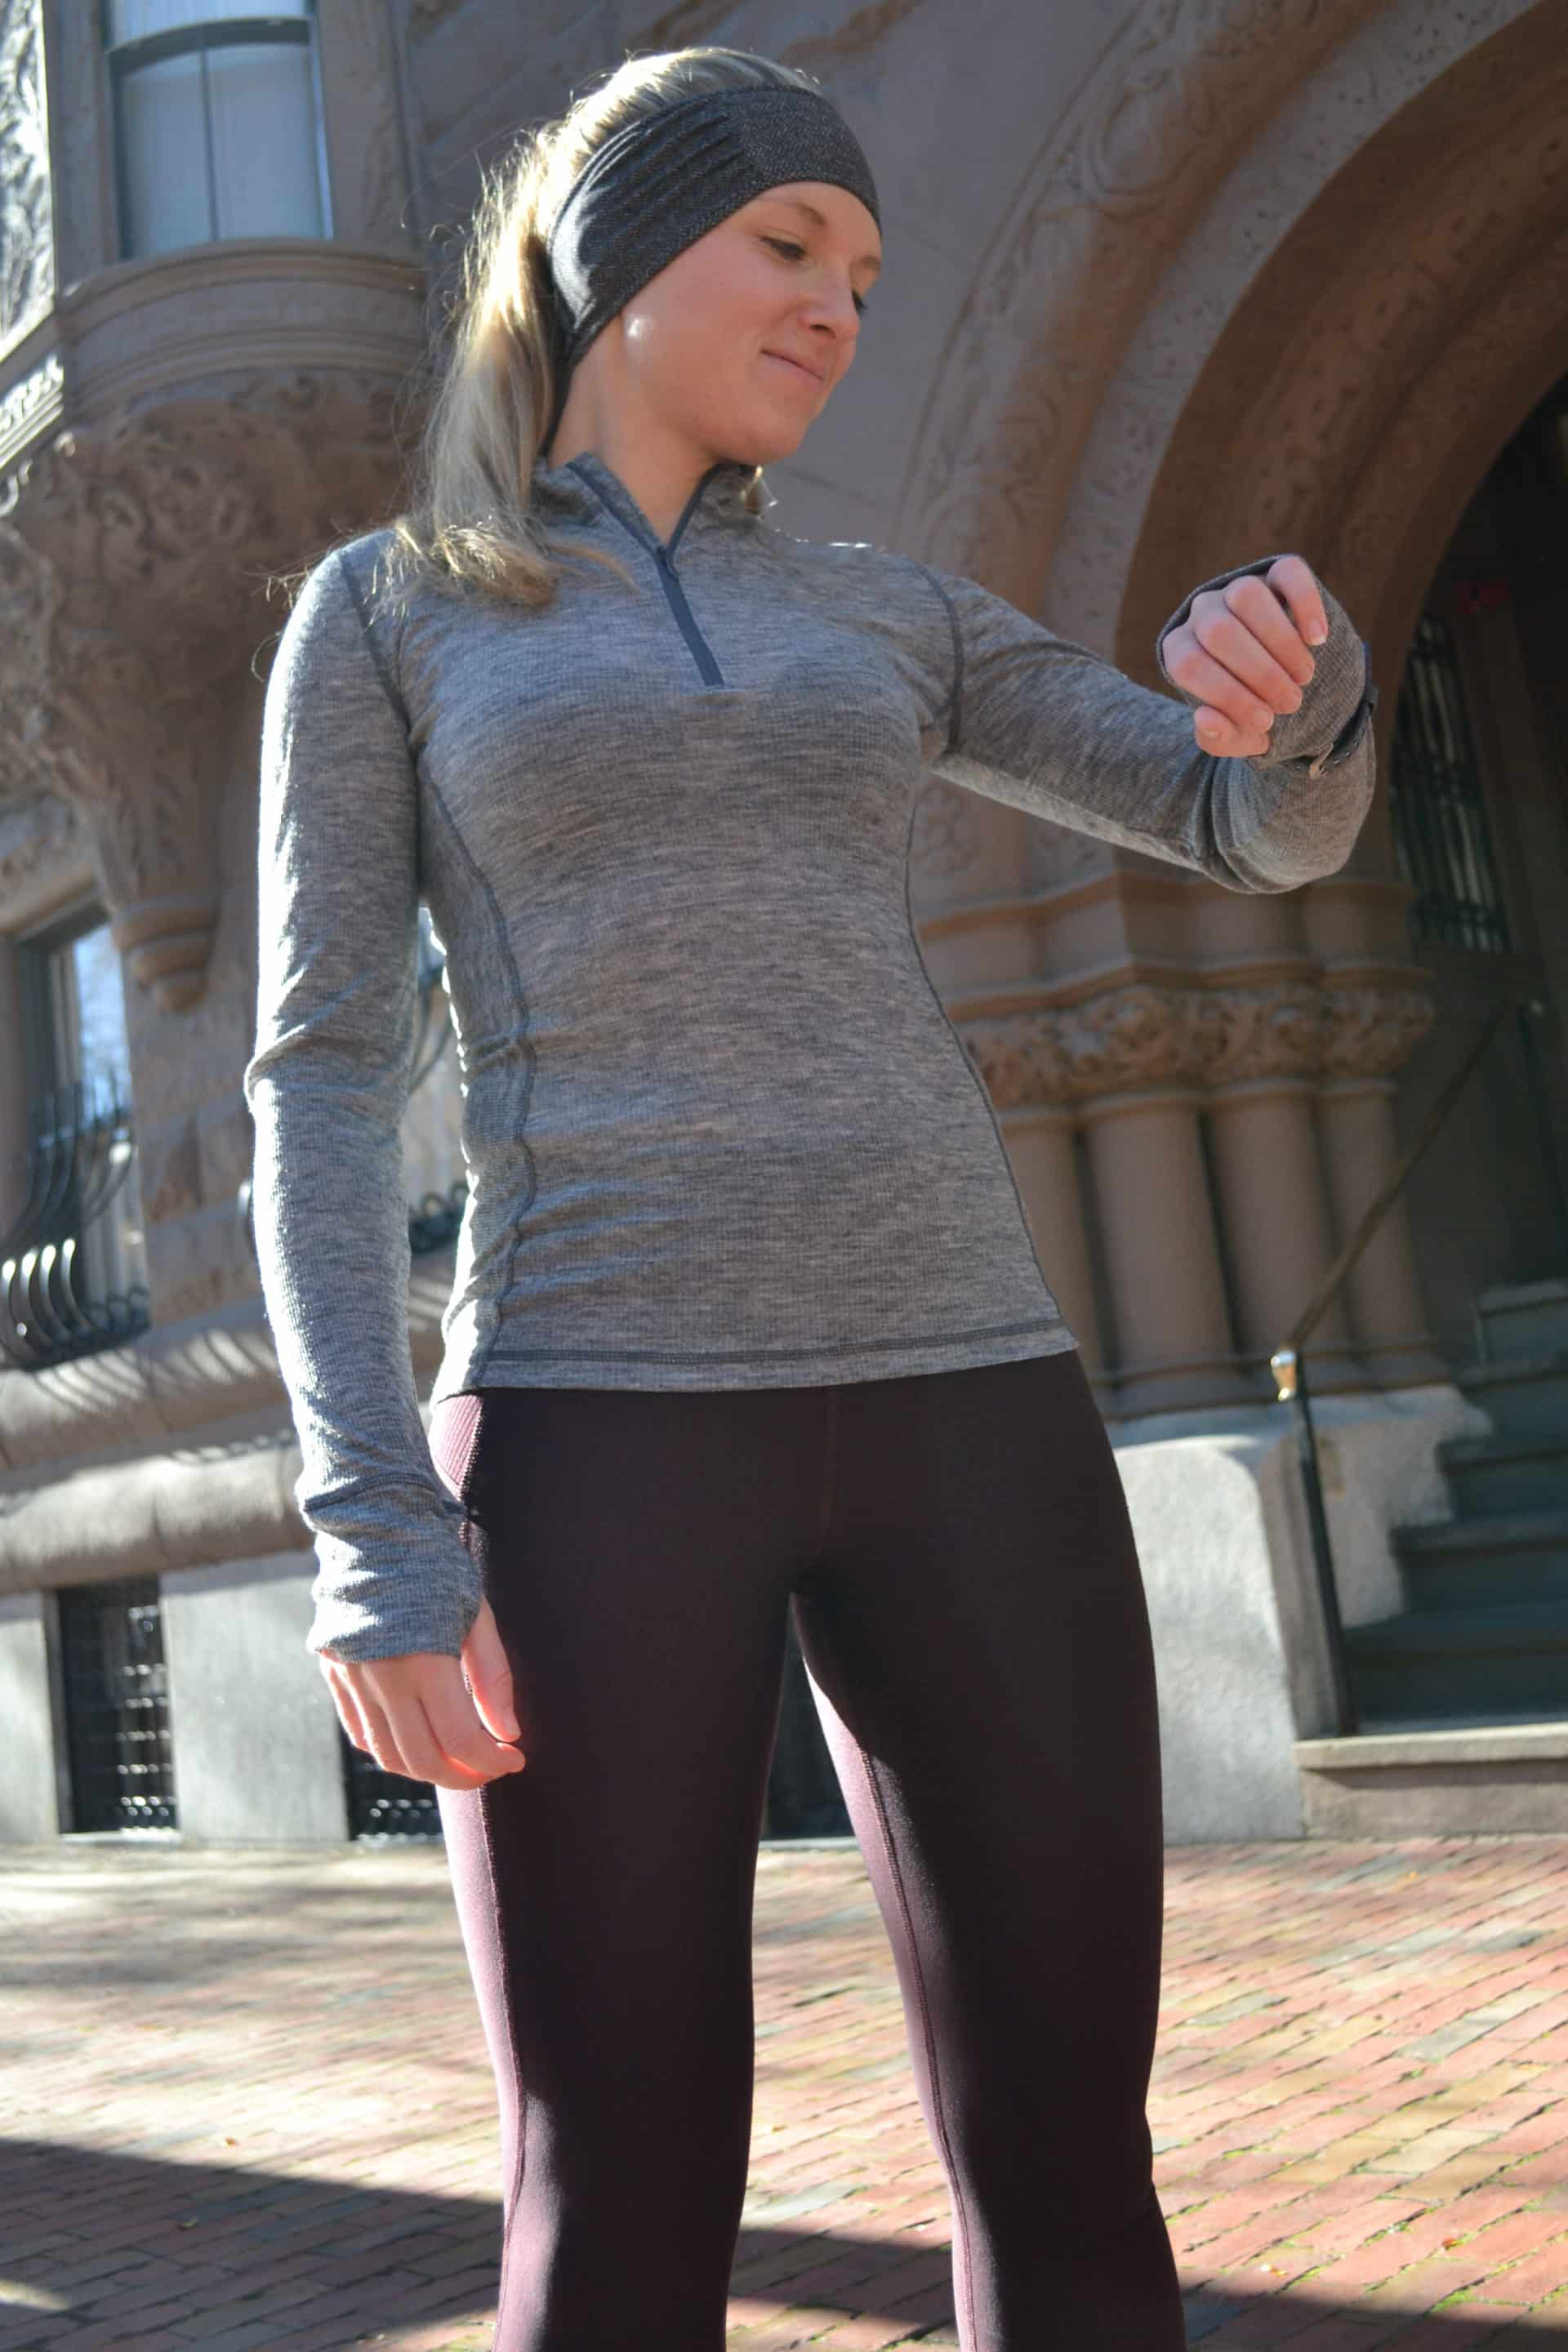 Winter running starts with a great baselayer